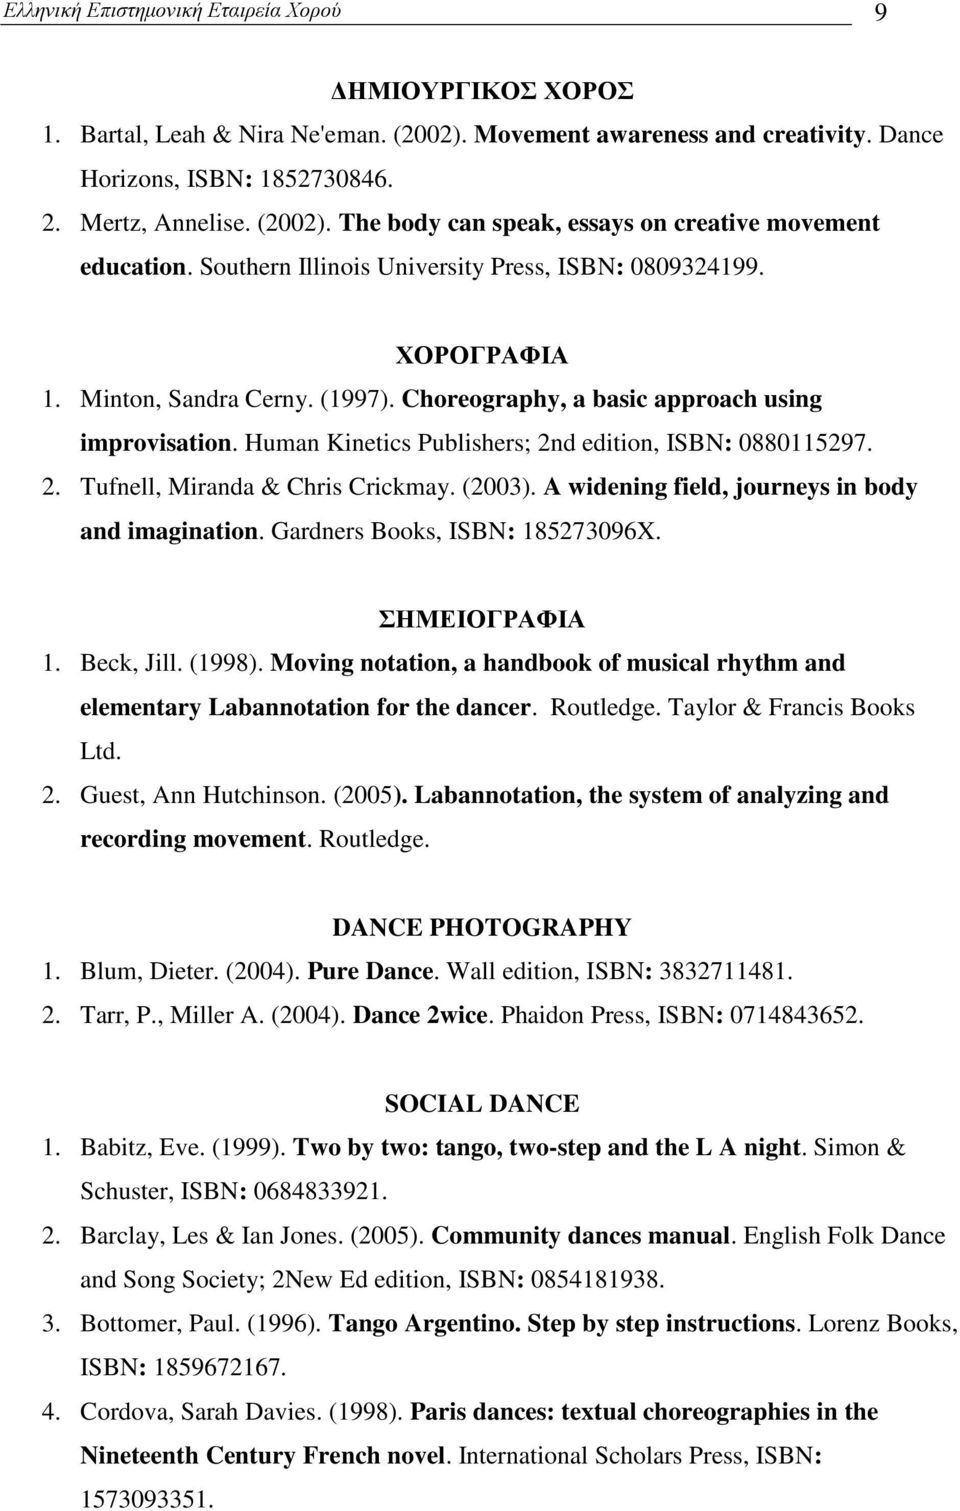 Human Kinetics Publishers; 2nd edition, ISBN: 0880115297. 2. Tufnell, Miranda & Chris Crickmay. (2003). A widening field, journeys in body and imagination. Gardners Books, ISBN: 185273096X.